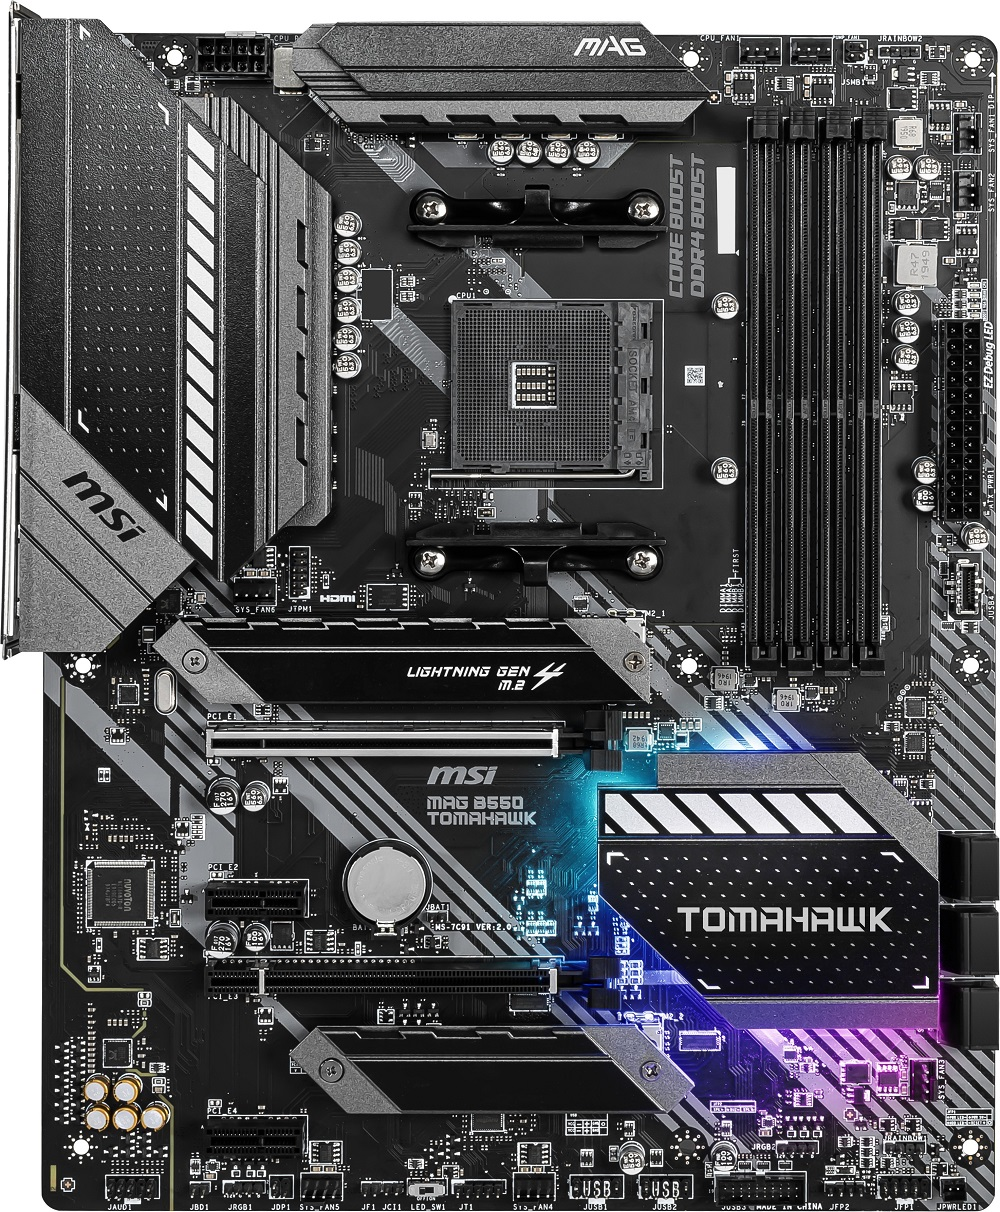 Msi Mag B550 Tomahawk The Amd B550 Motherboard Overview Asus Gigabyte Msi Asrock And Others